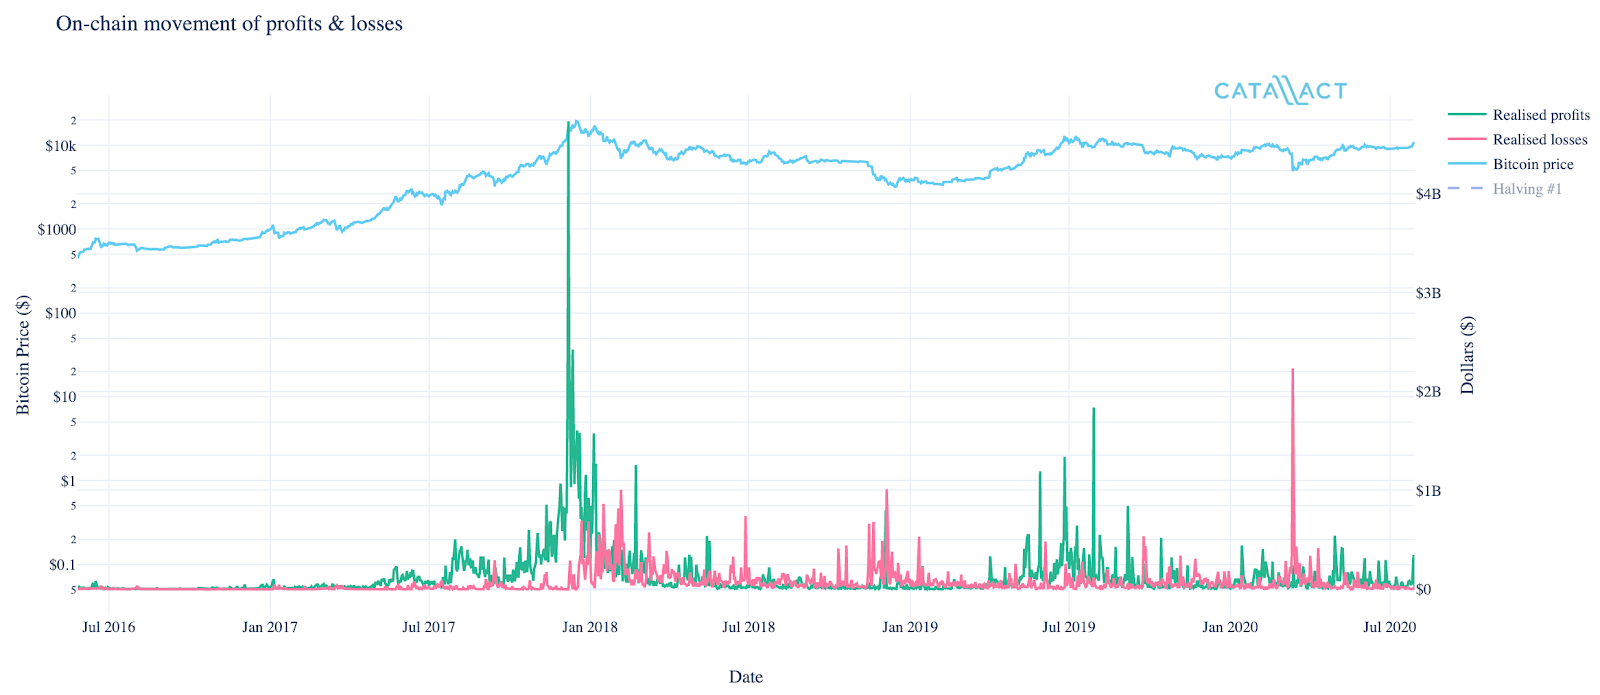 Realized profit and loss at various Bitcoin price points, July 2016 to July 2020